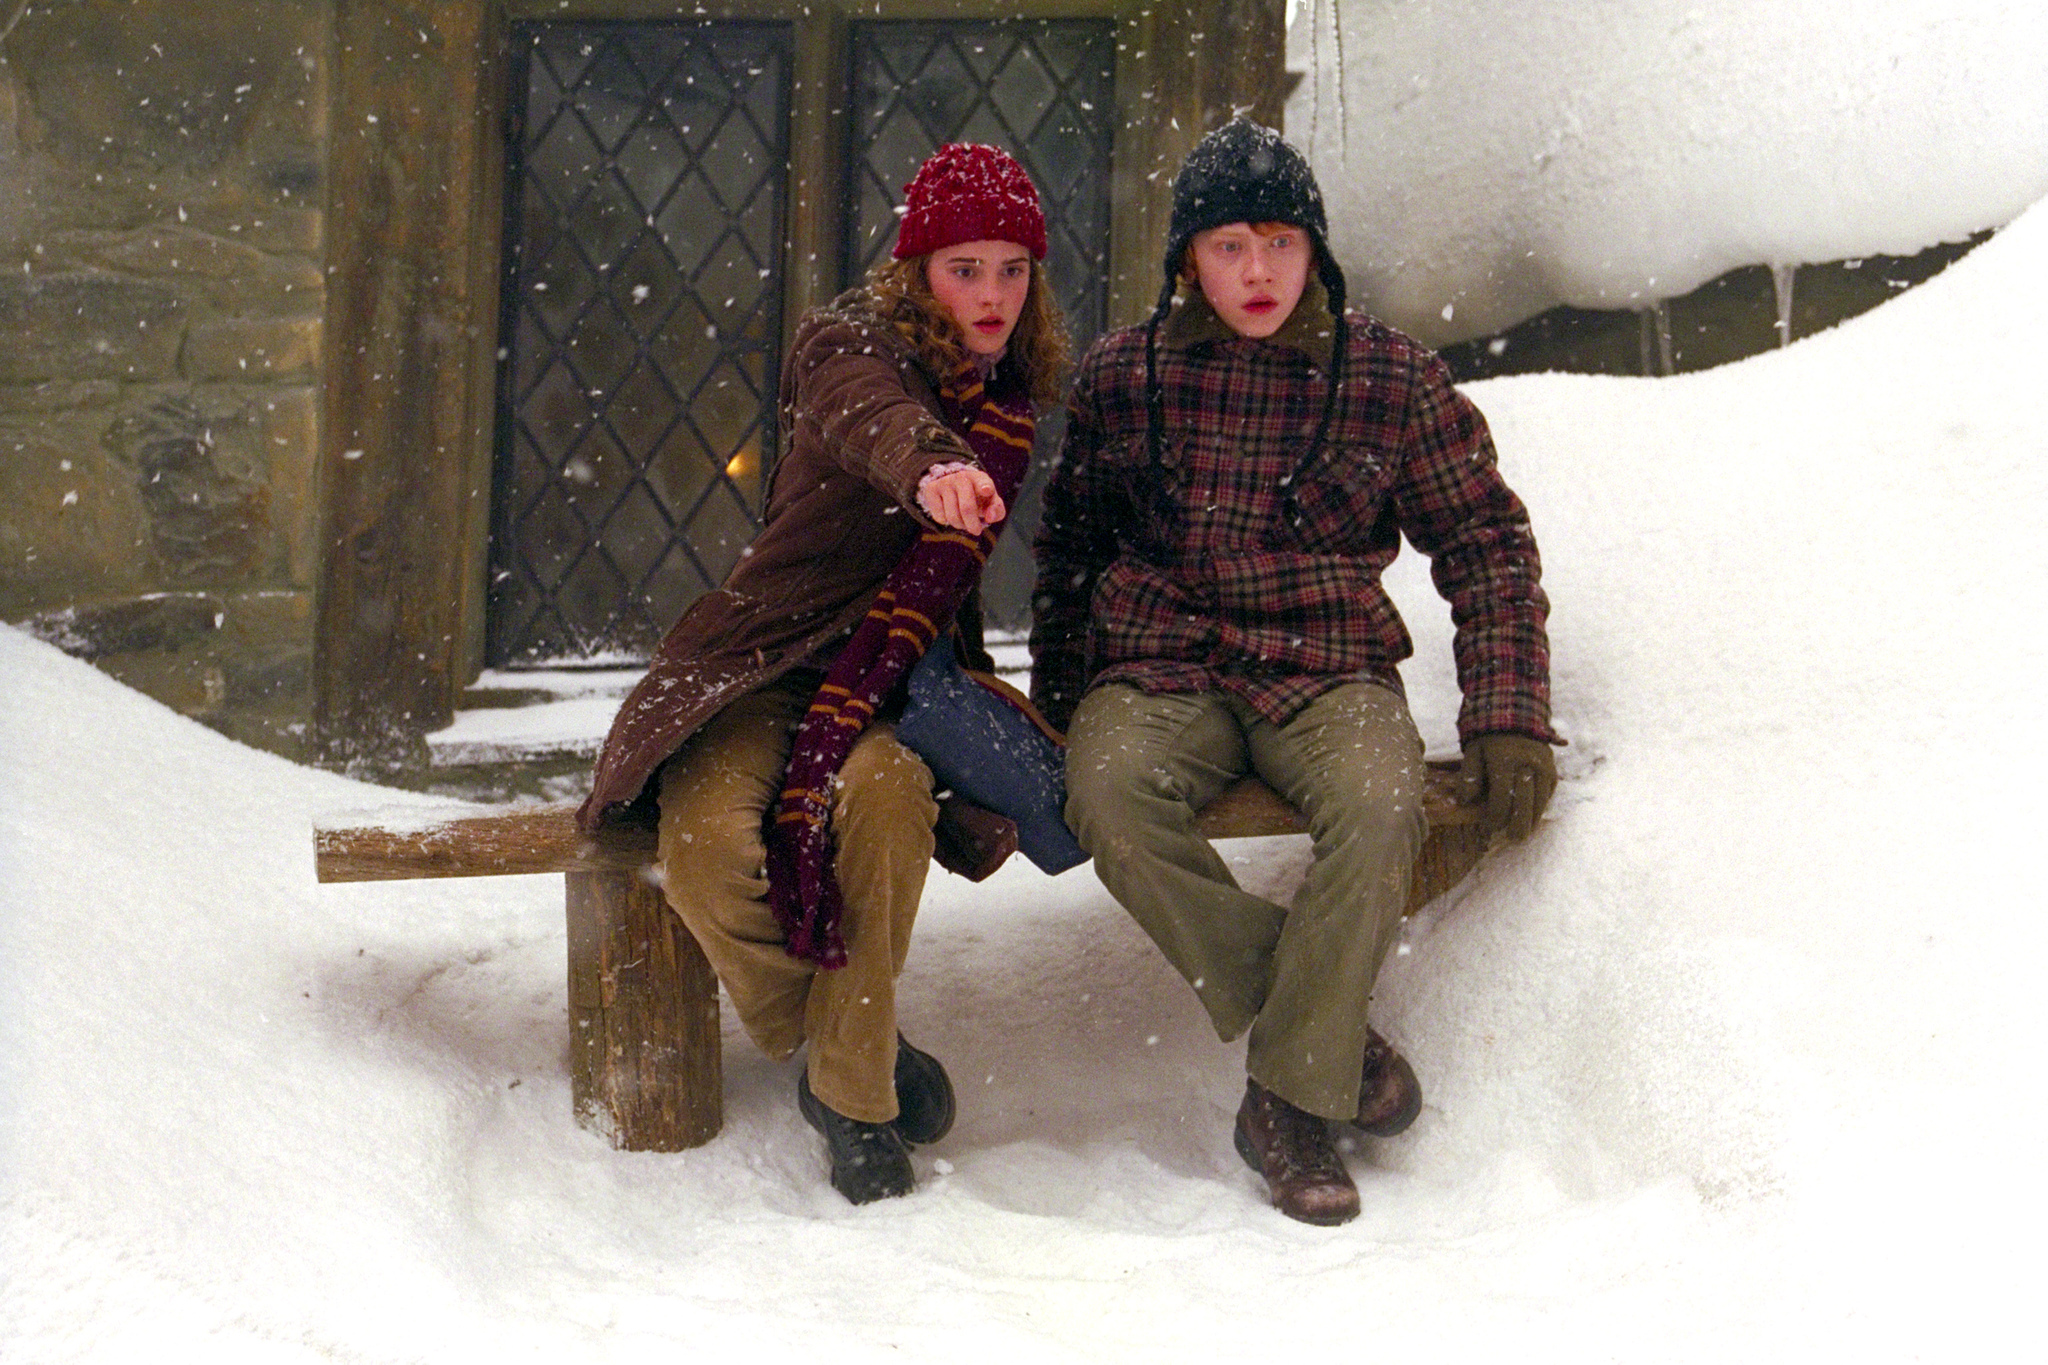 Rupert Grint and Emma Watson in Harry Potter and the Prisoner of Azkaban (2004)